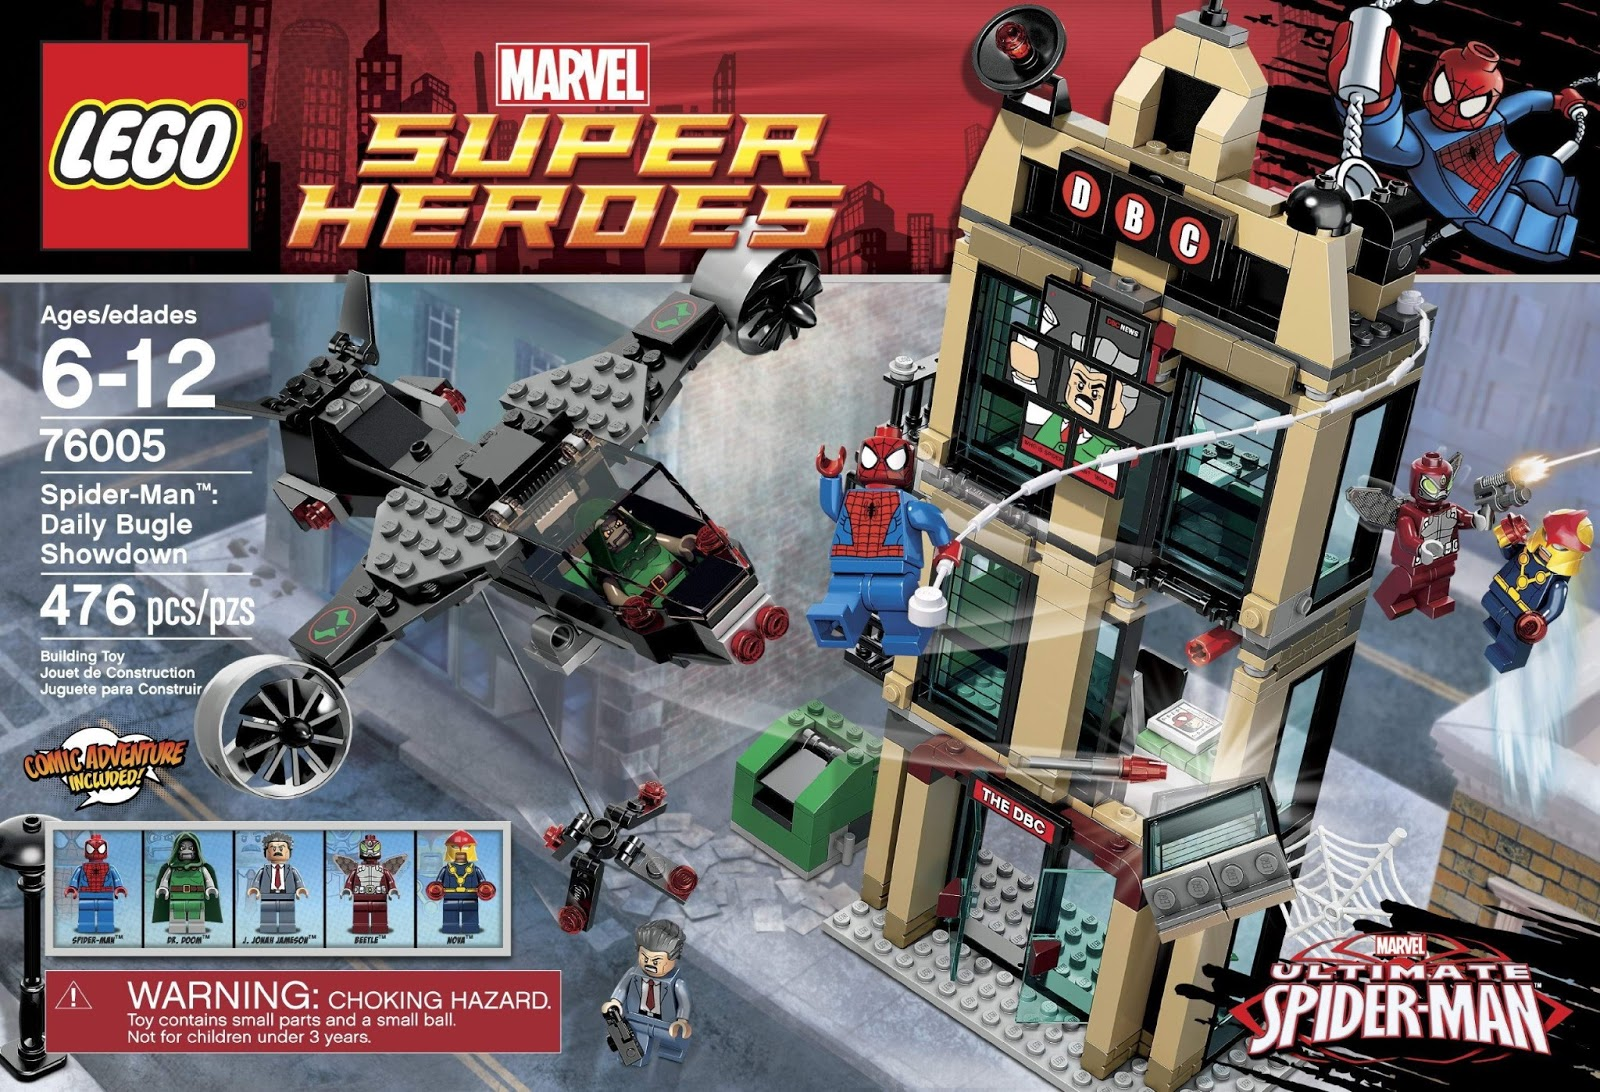 lego spider man 3 sets - photo #13